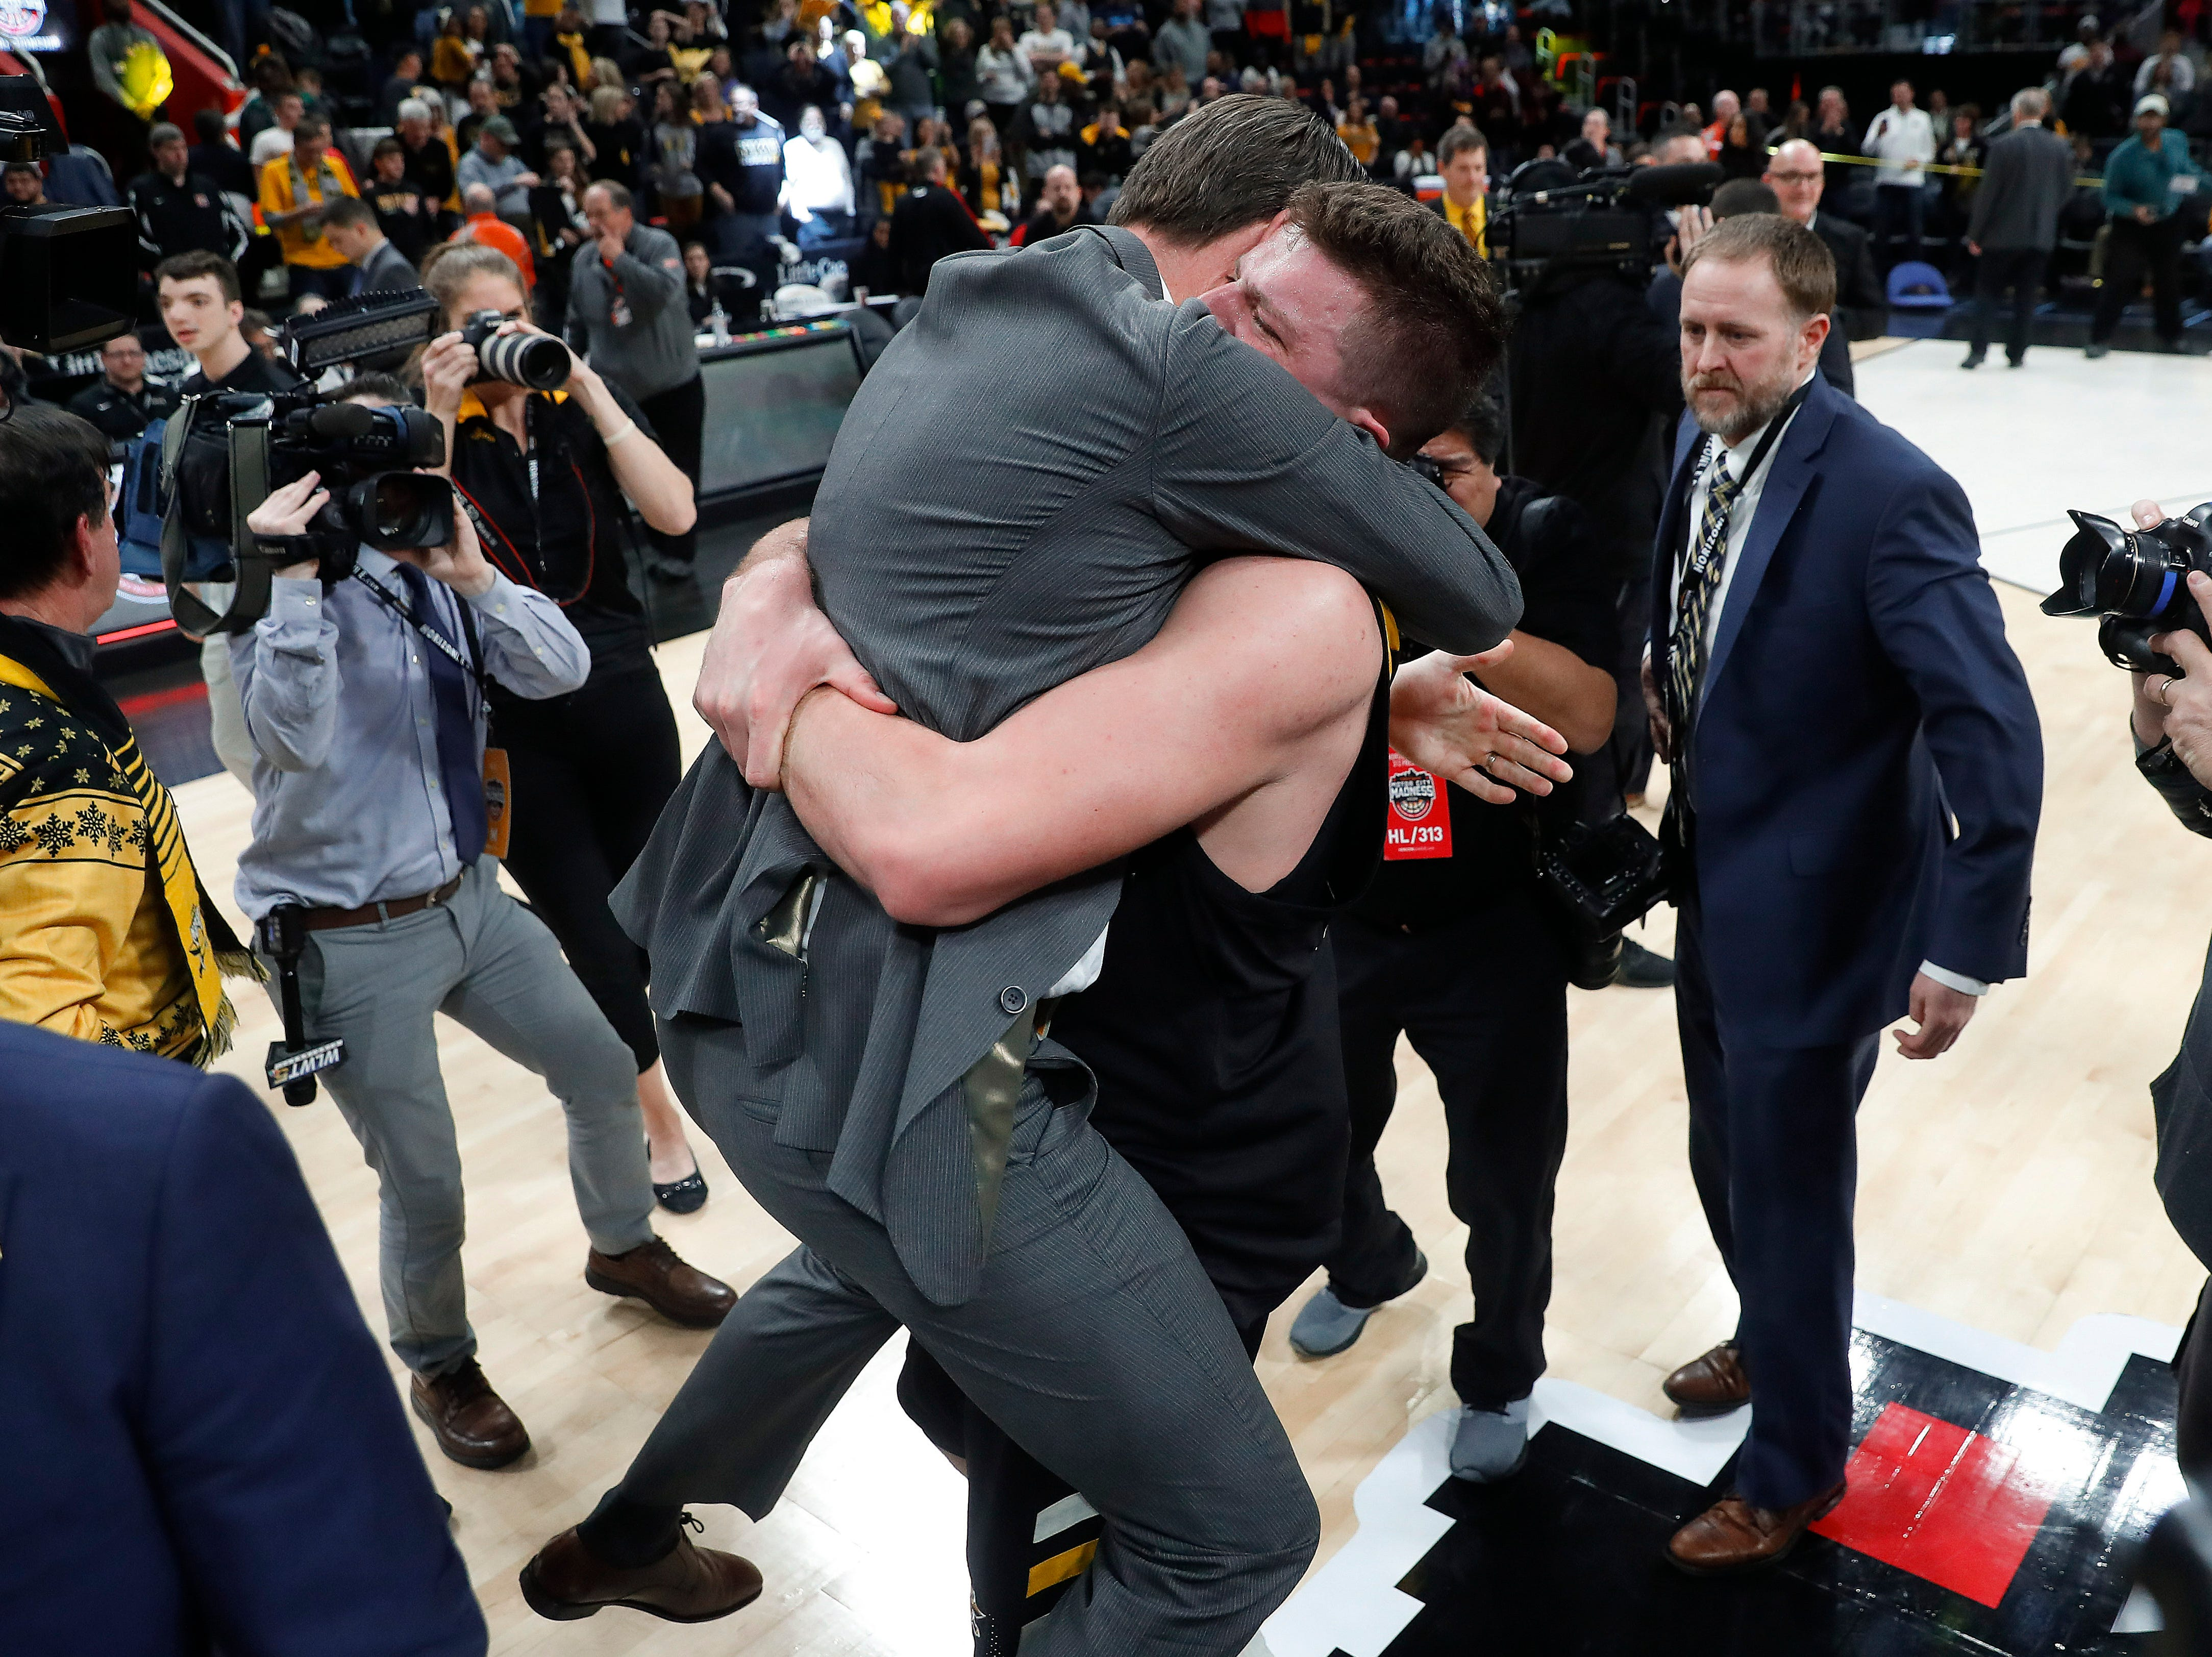 Northern Kentucky coach John Brannen and player Drew McDonald celebrate the team's 77-66 win against Wright State.